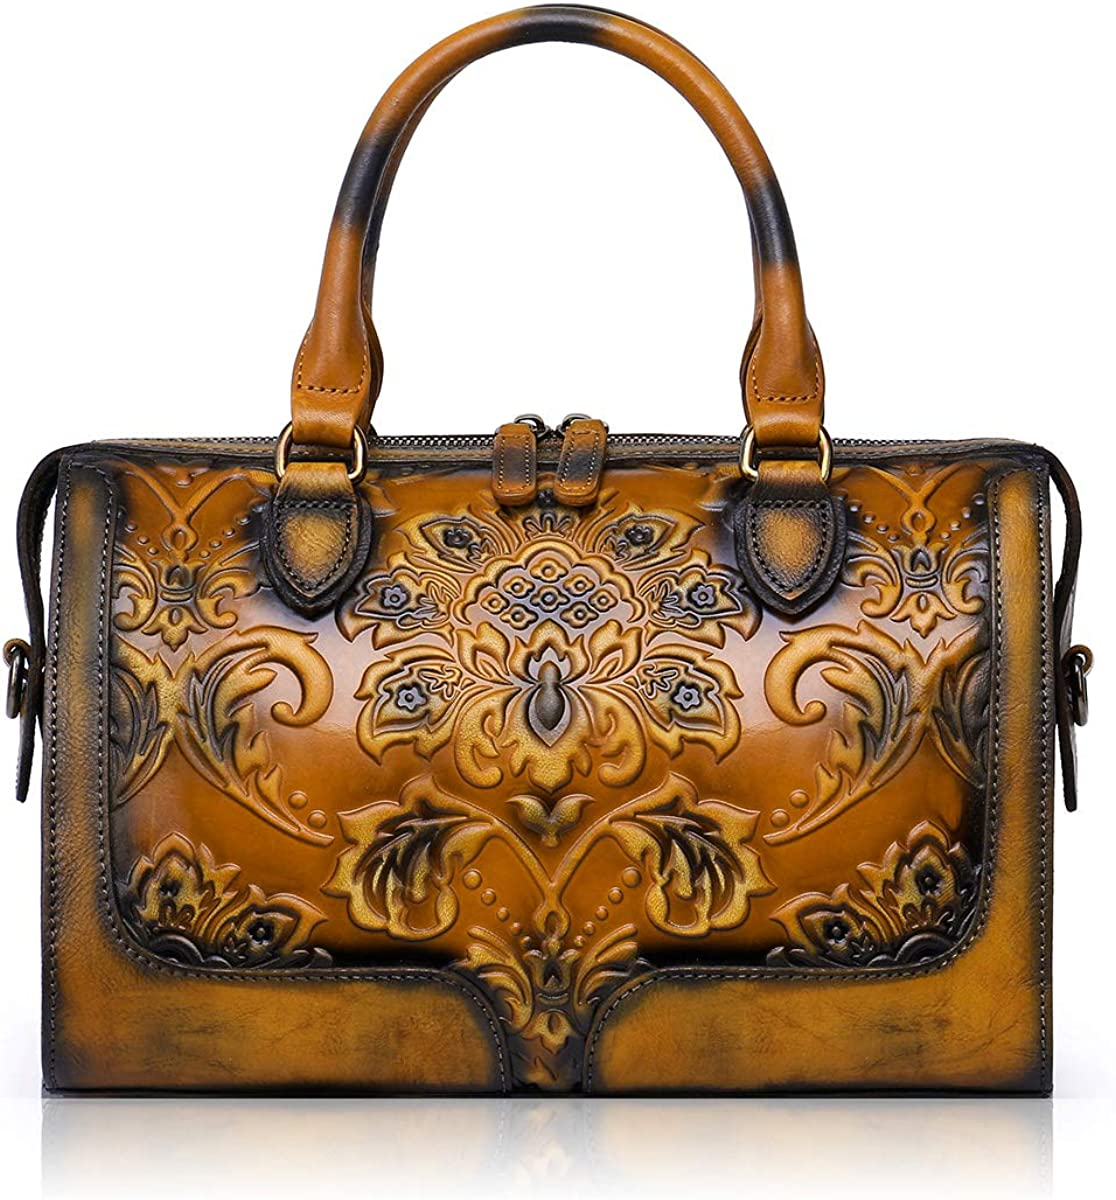 APHISON Designer Hand Bags Unique Embossed Floral Women's Leather Handbags (BROWN)